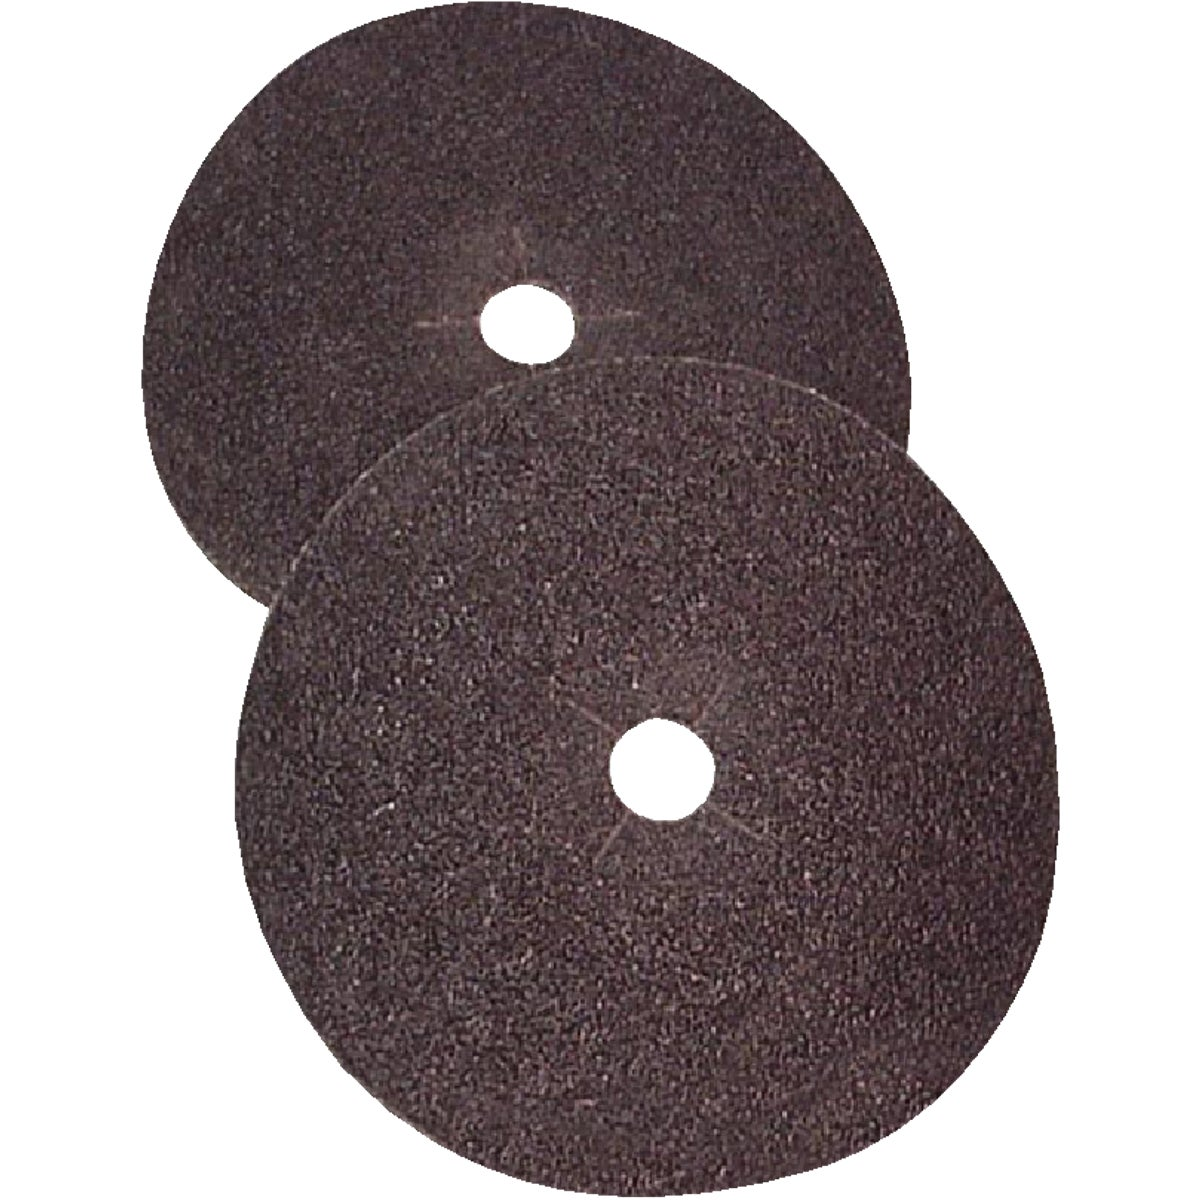 "5"" 60G FLR SANDING DISC - 006-850260 by Virginia Abrasives"